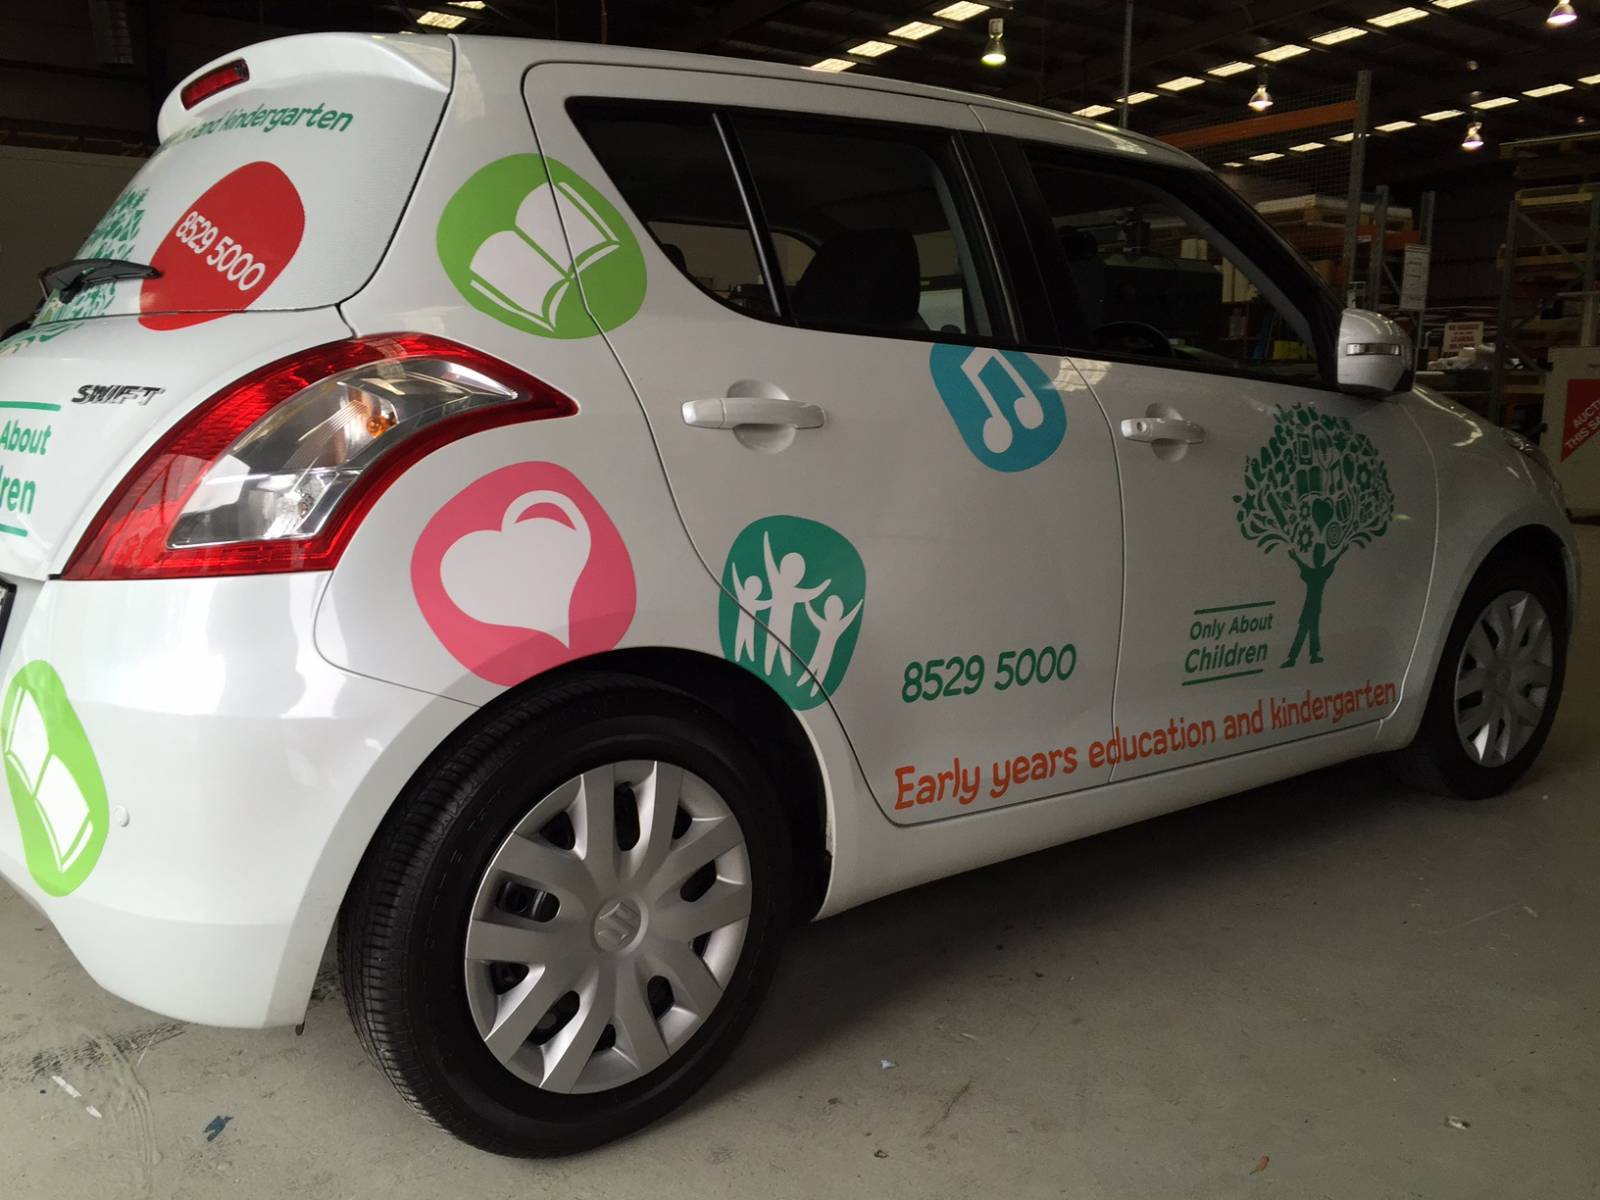 Only About Children Vehicle Graphics